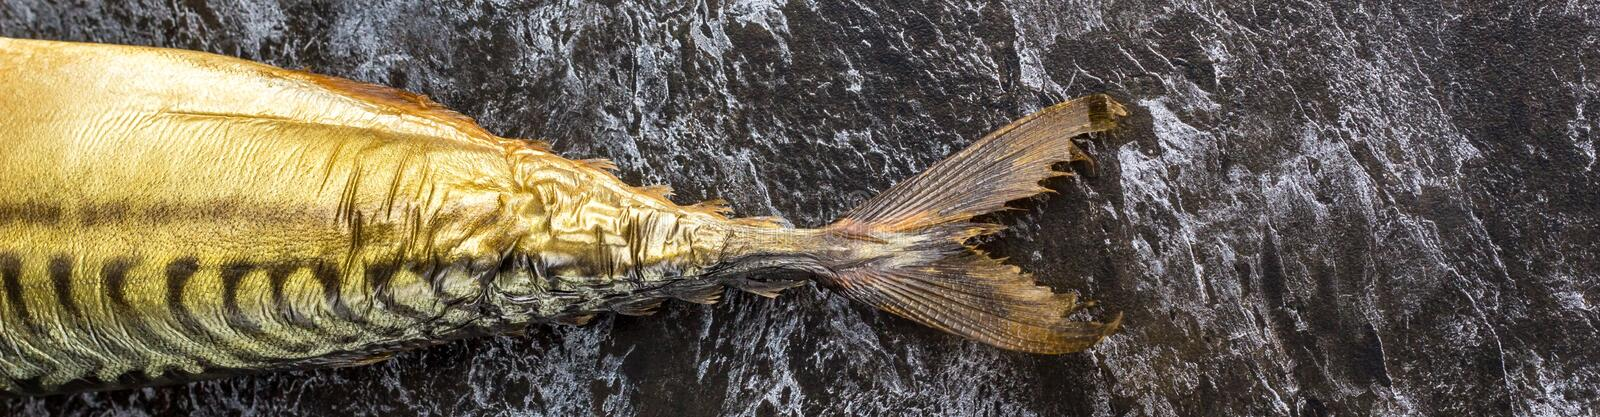 Banner of Smoked mackerel without head on black background. copyspace top view royalty free stock images